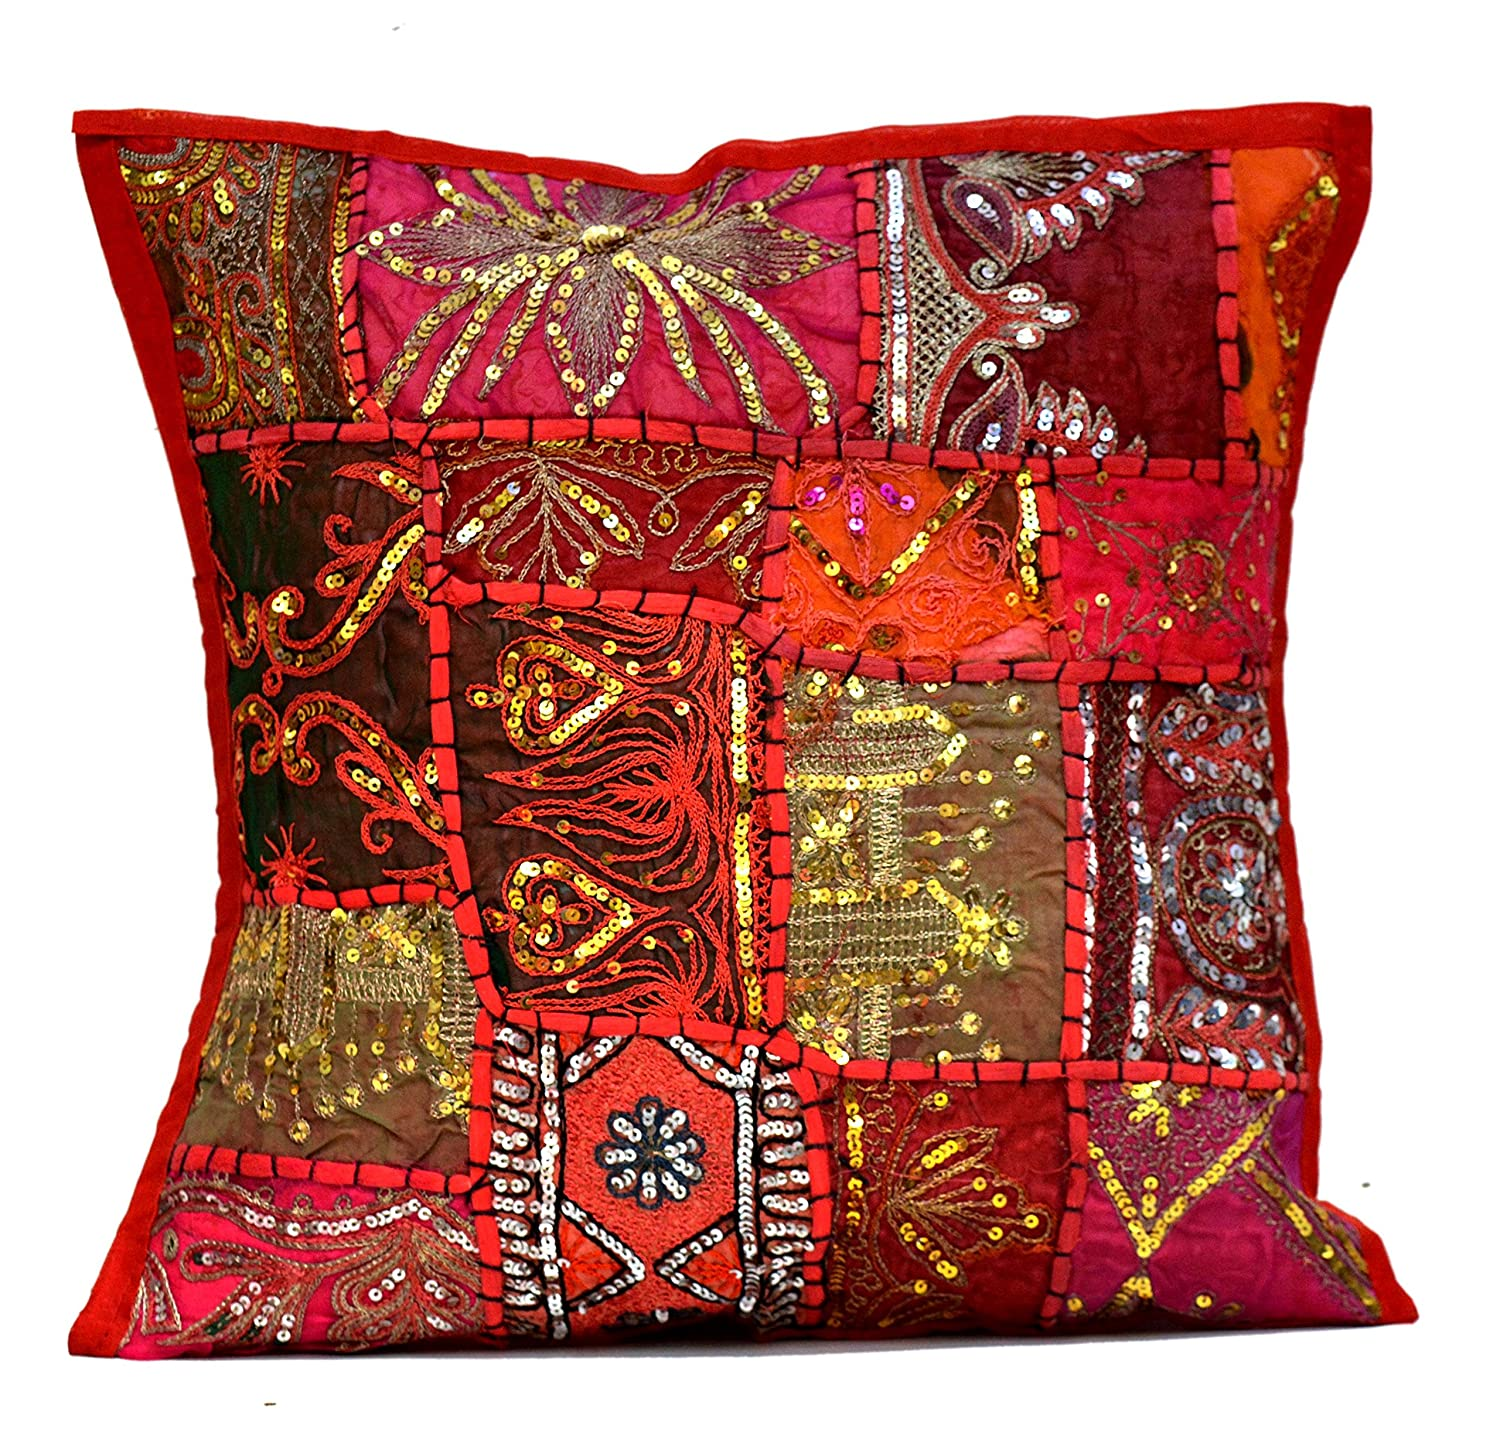 (Pink) - An Ethnic Embroidery Sequin Patchwork Throw Pillow Cases Cushion Cover (Pink) Amazingindiaonline